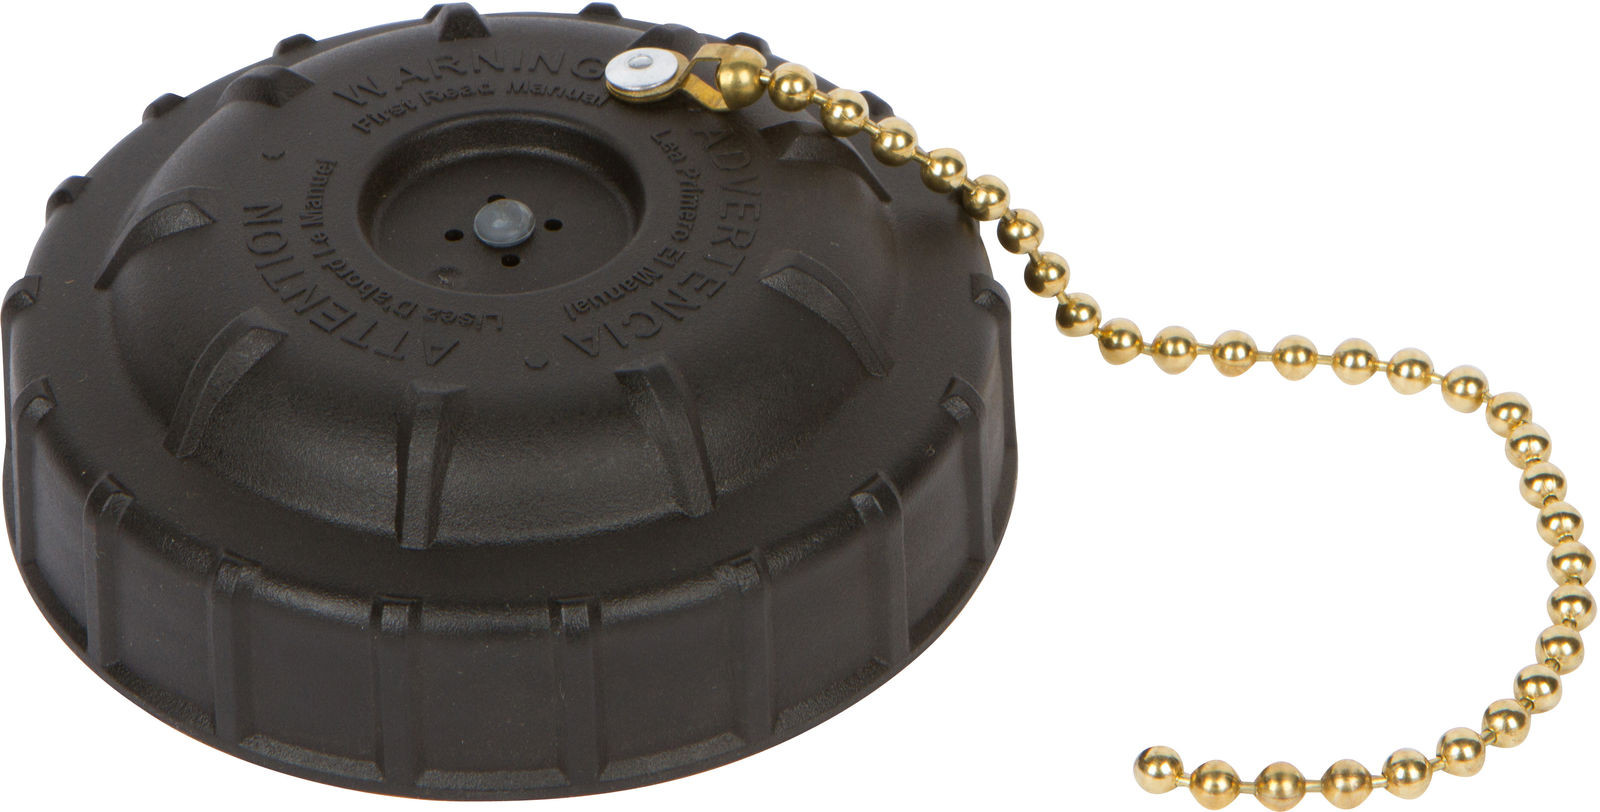 181447 Cap Assy, Black, w/Chain, Poly Fire